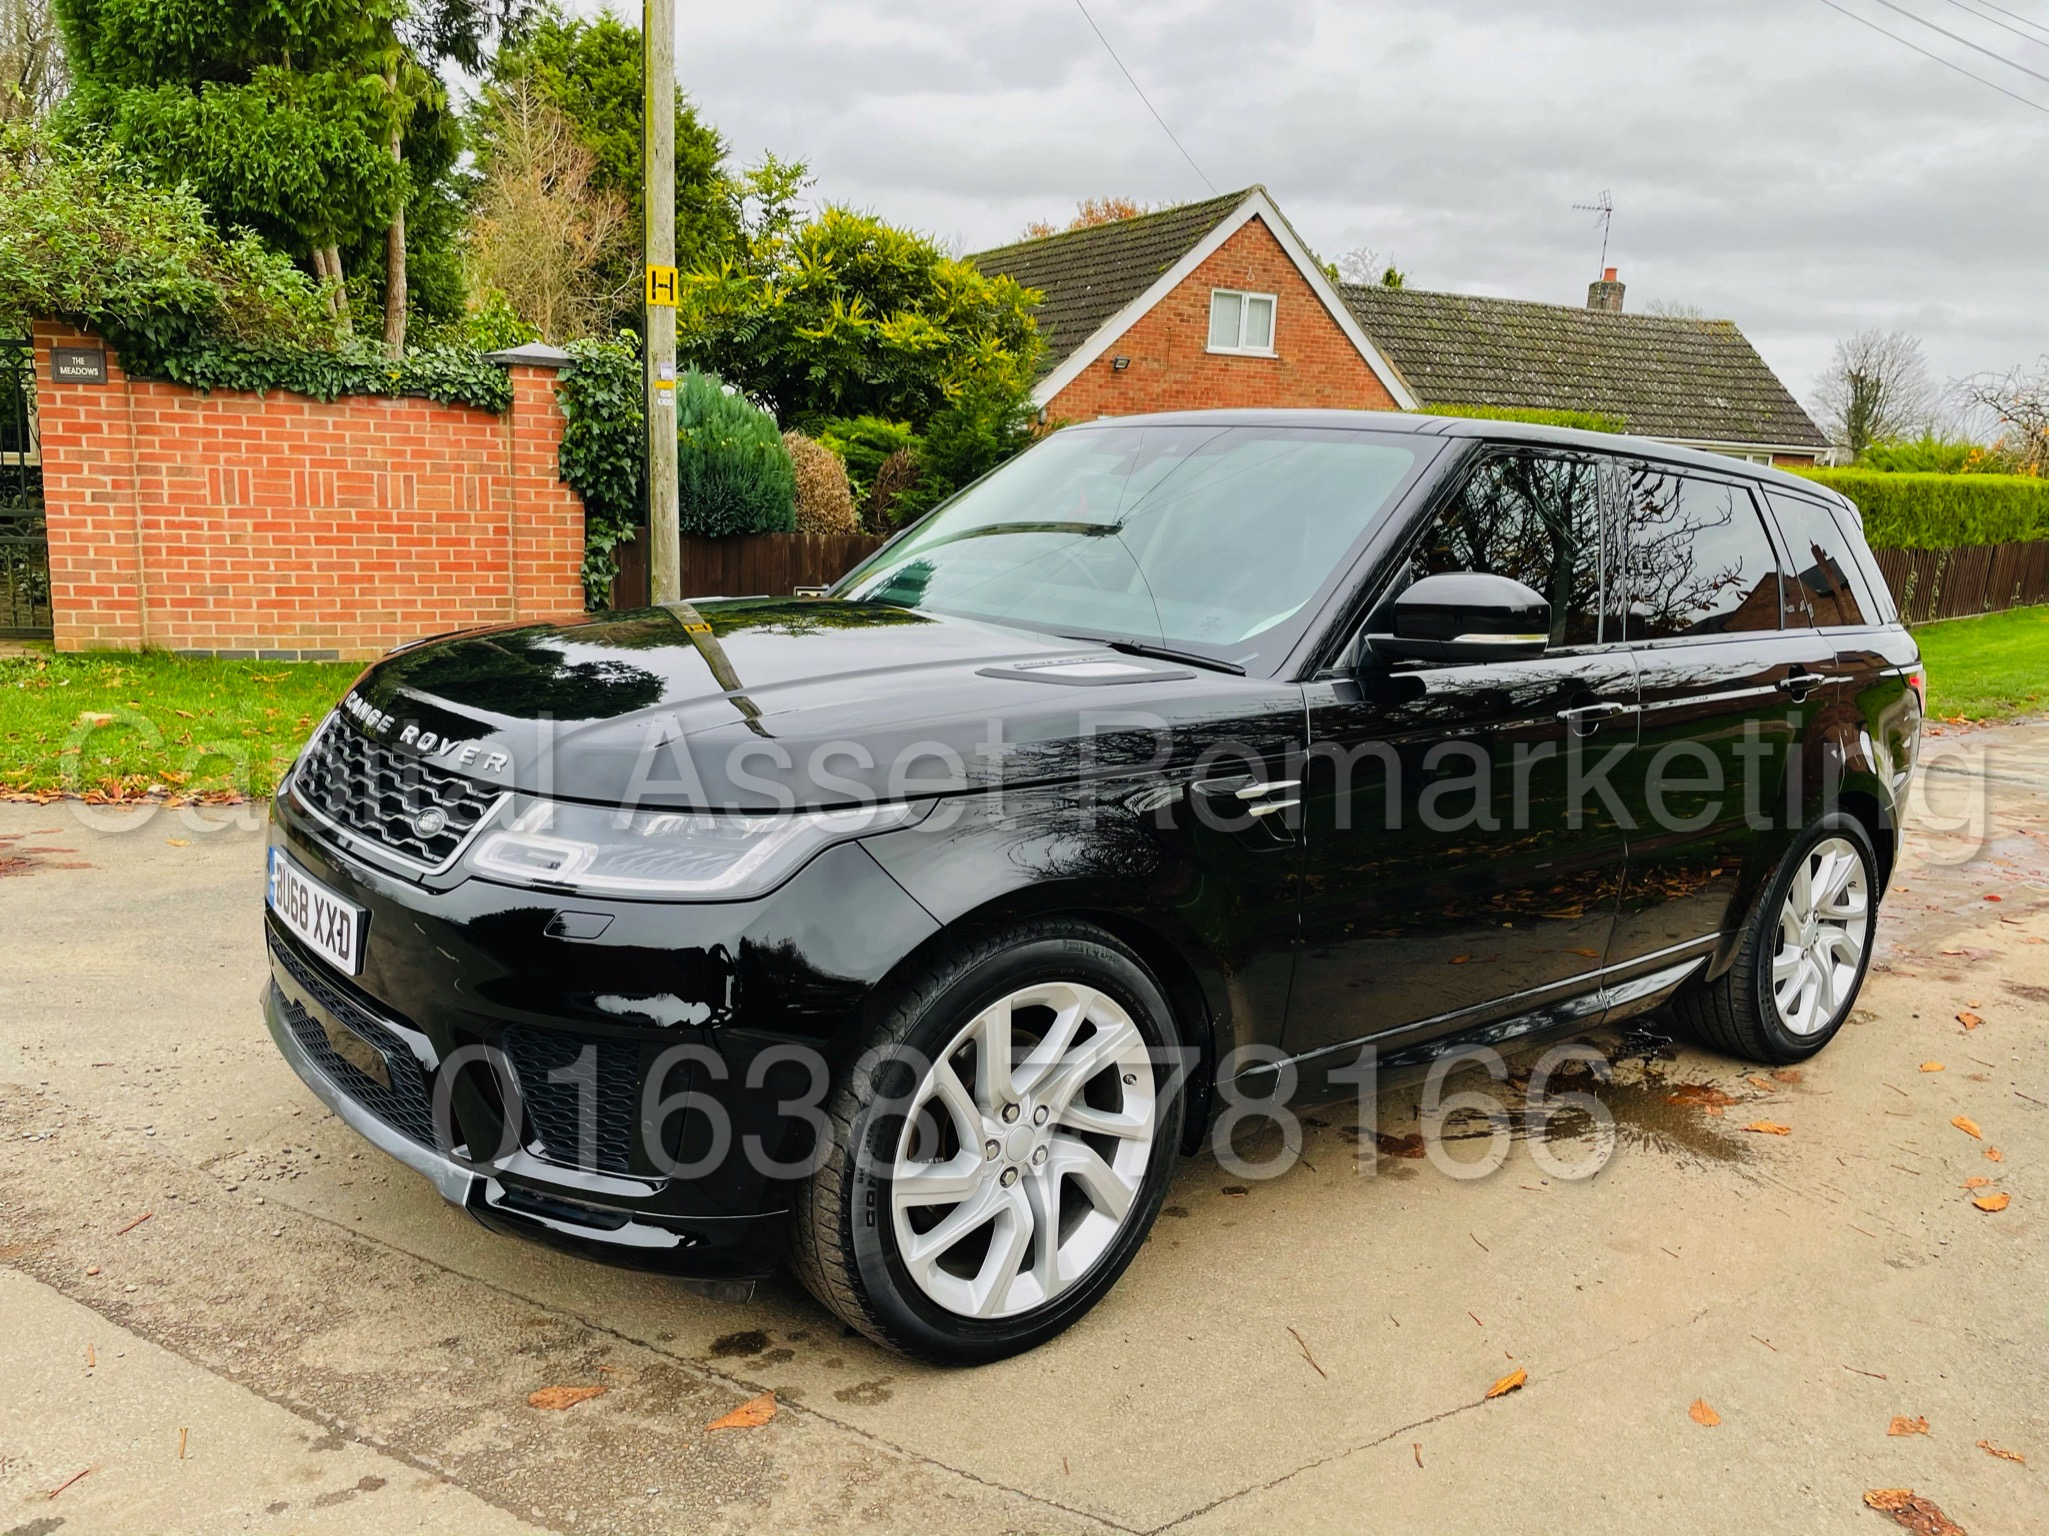 RANGE ROVER SPORT *HSE EDITION* SUV (2019 MODEL) '3.0 SDV6 - 306 BHP - 8 SPEED AUTO' *FULLY LOADED* - Image 6 of 56